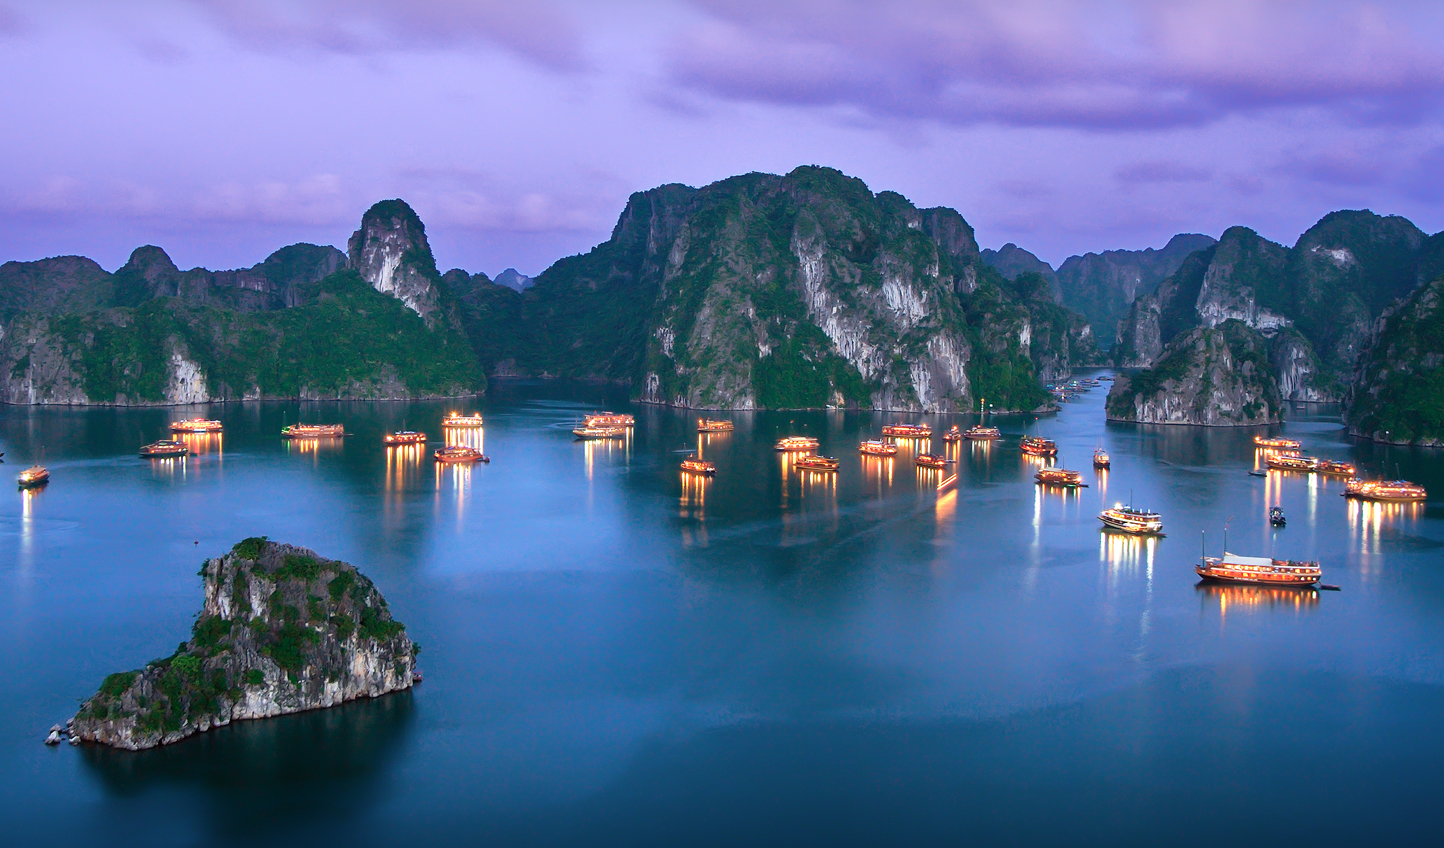 Tranquil evenings in the beauty of Halong Bay